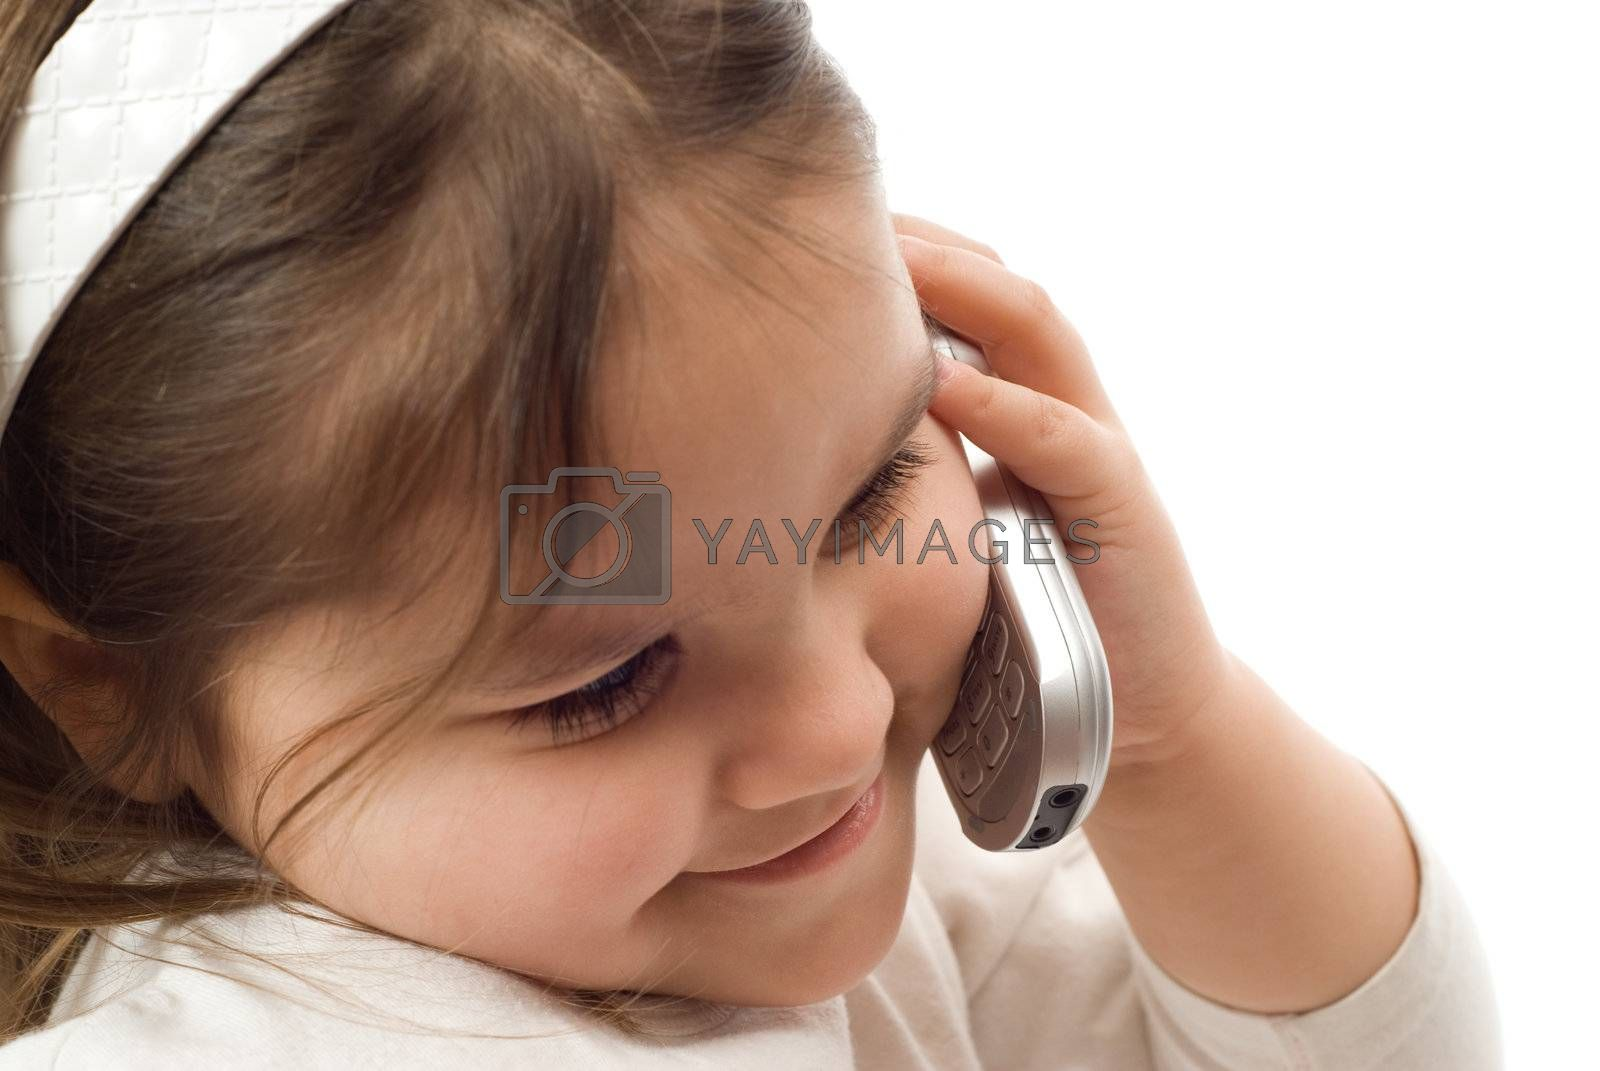 A young girl having a phone conversation on a cellphone